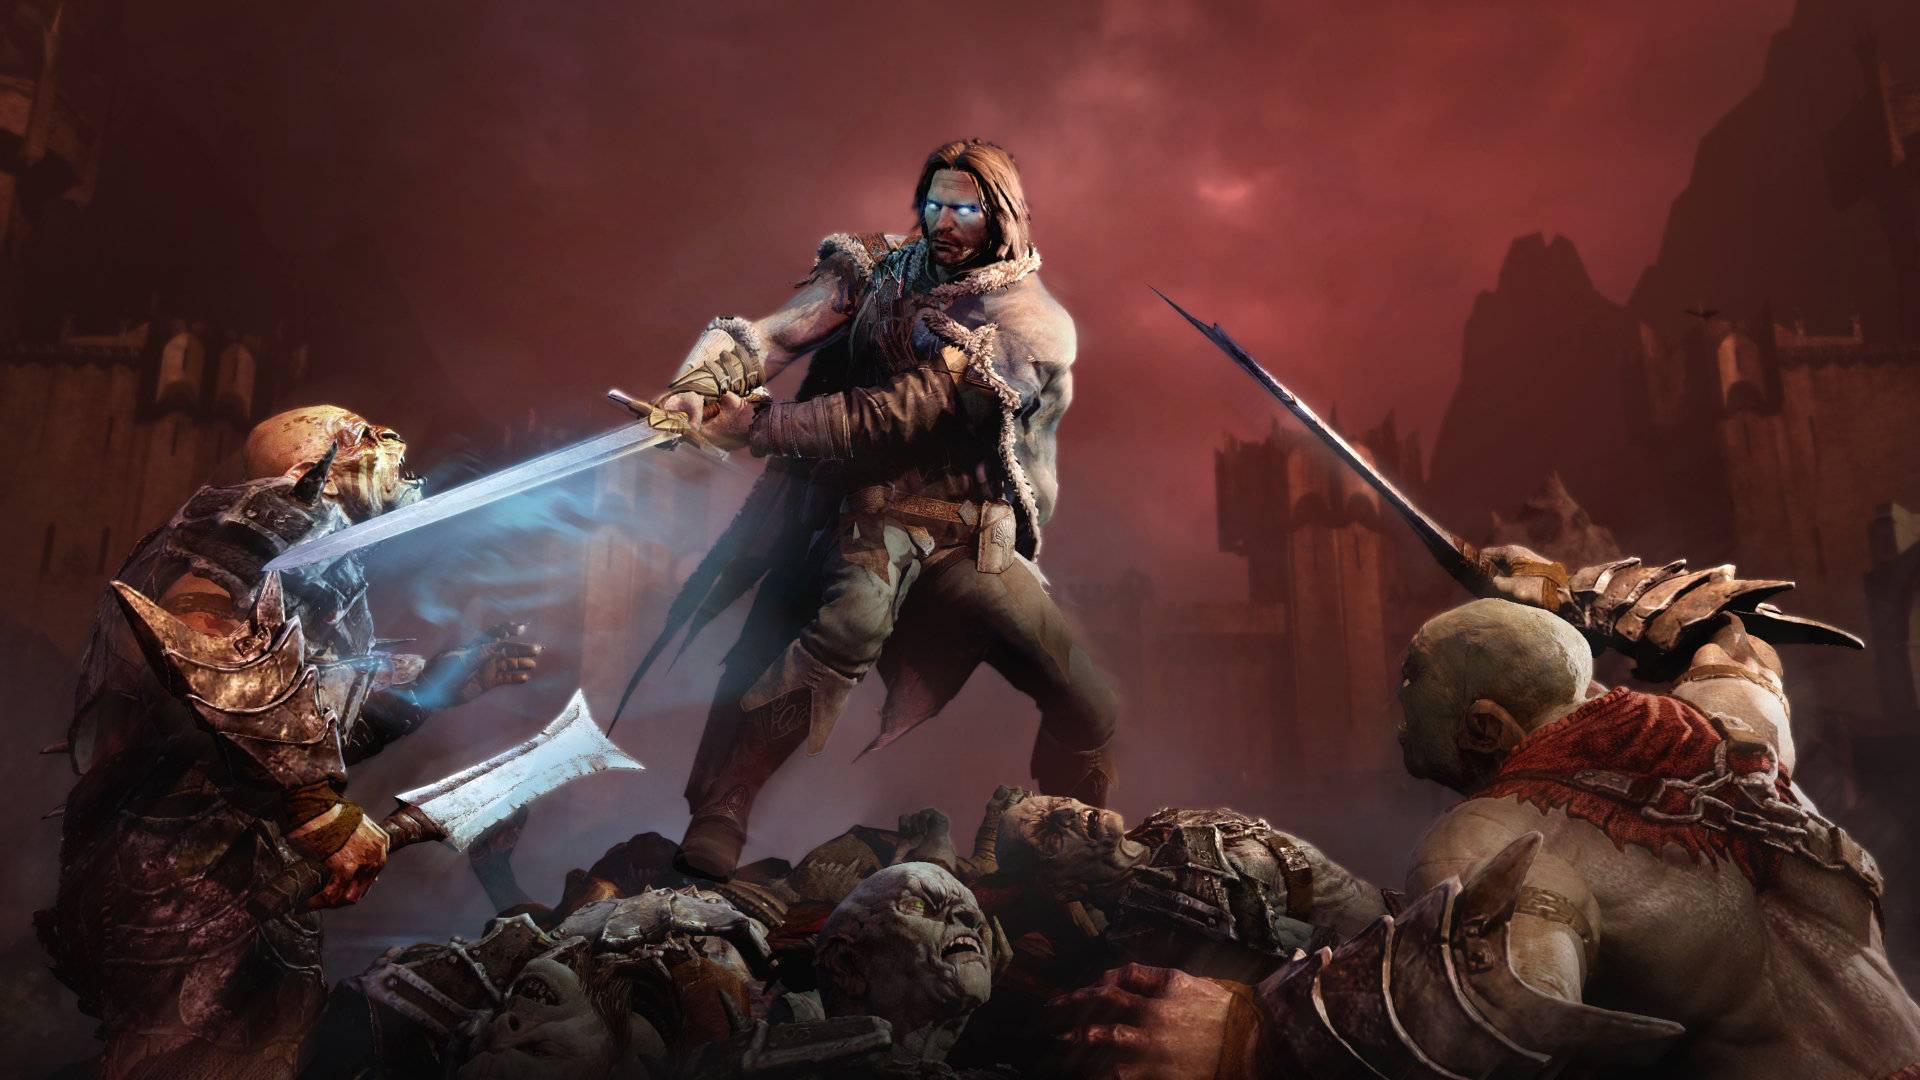 middle-earth-shadow-of-mordor-screen-12-